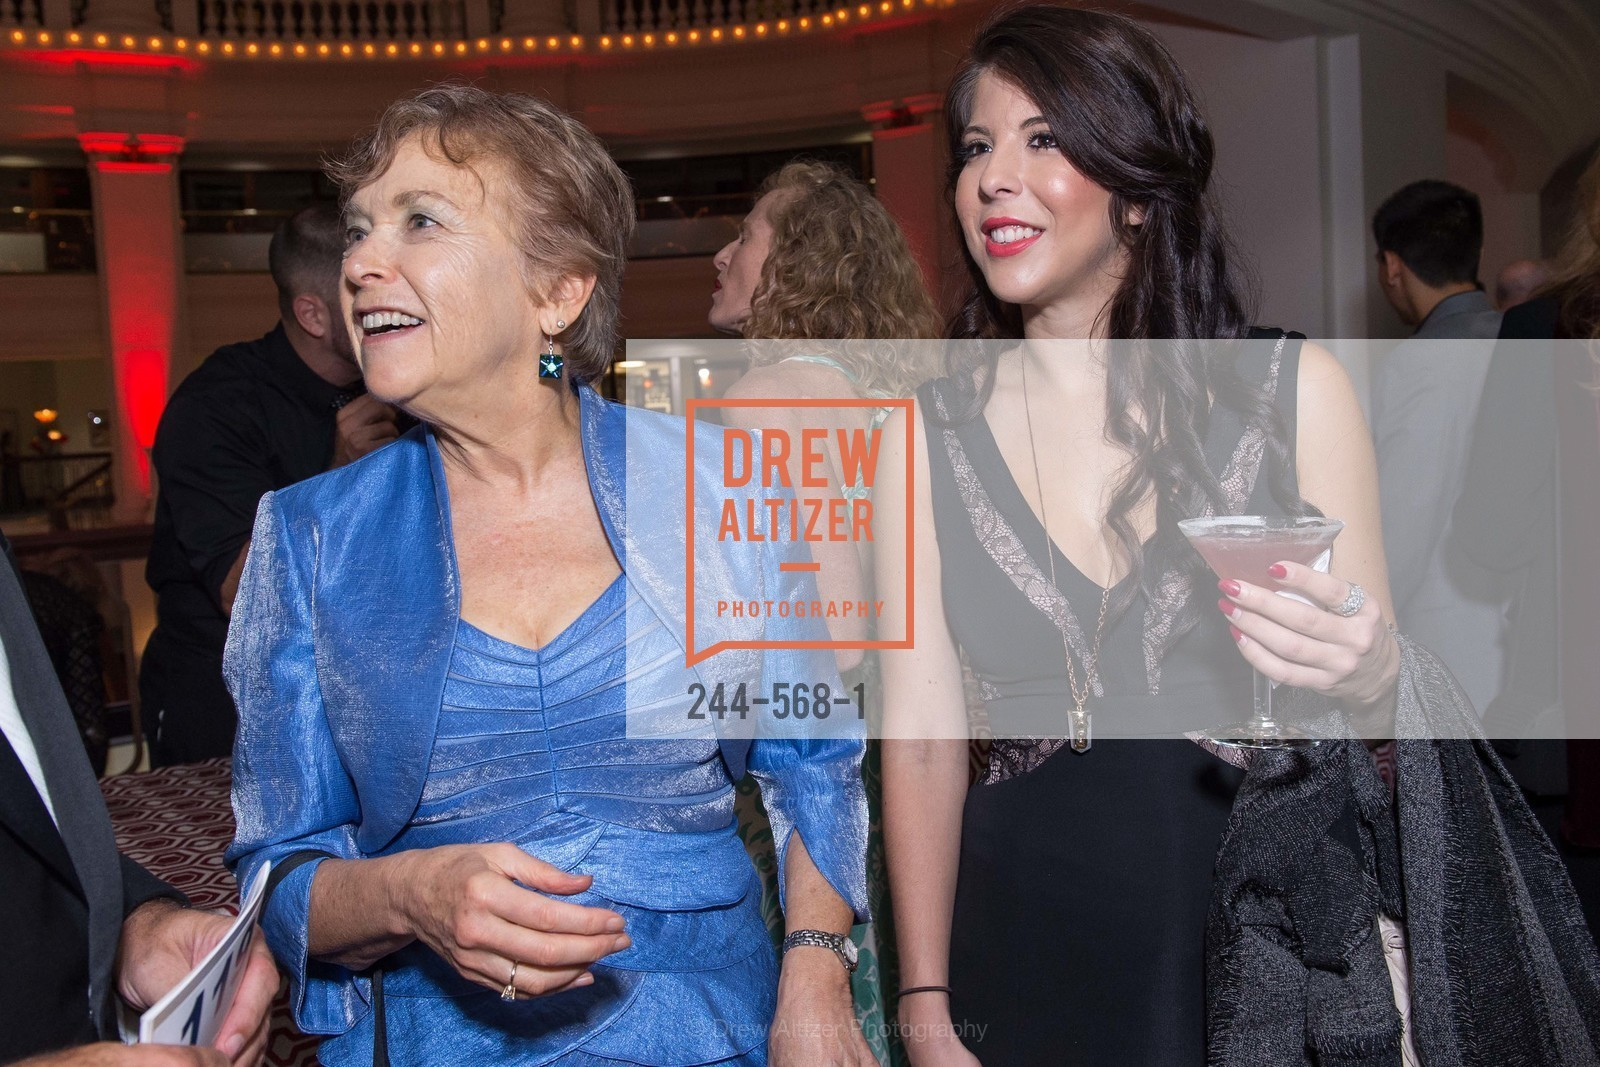 Sheila Jordan, Carina Gonzales, SOTHEBY'S  Hosts a Private Viewing of Highlights from the Collection of MRS. PAUL MELLON, US, September 17th, 2014,Drew Altizer, Drew Altizer Photography, full-service agency, private events, San Francisco photographer, photographer california